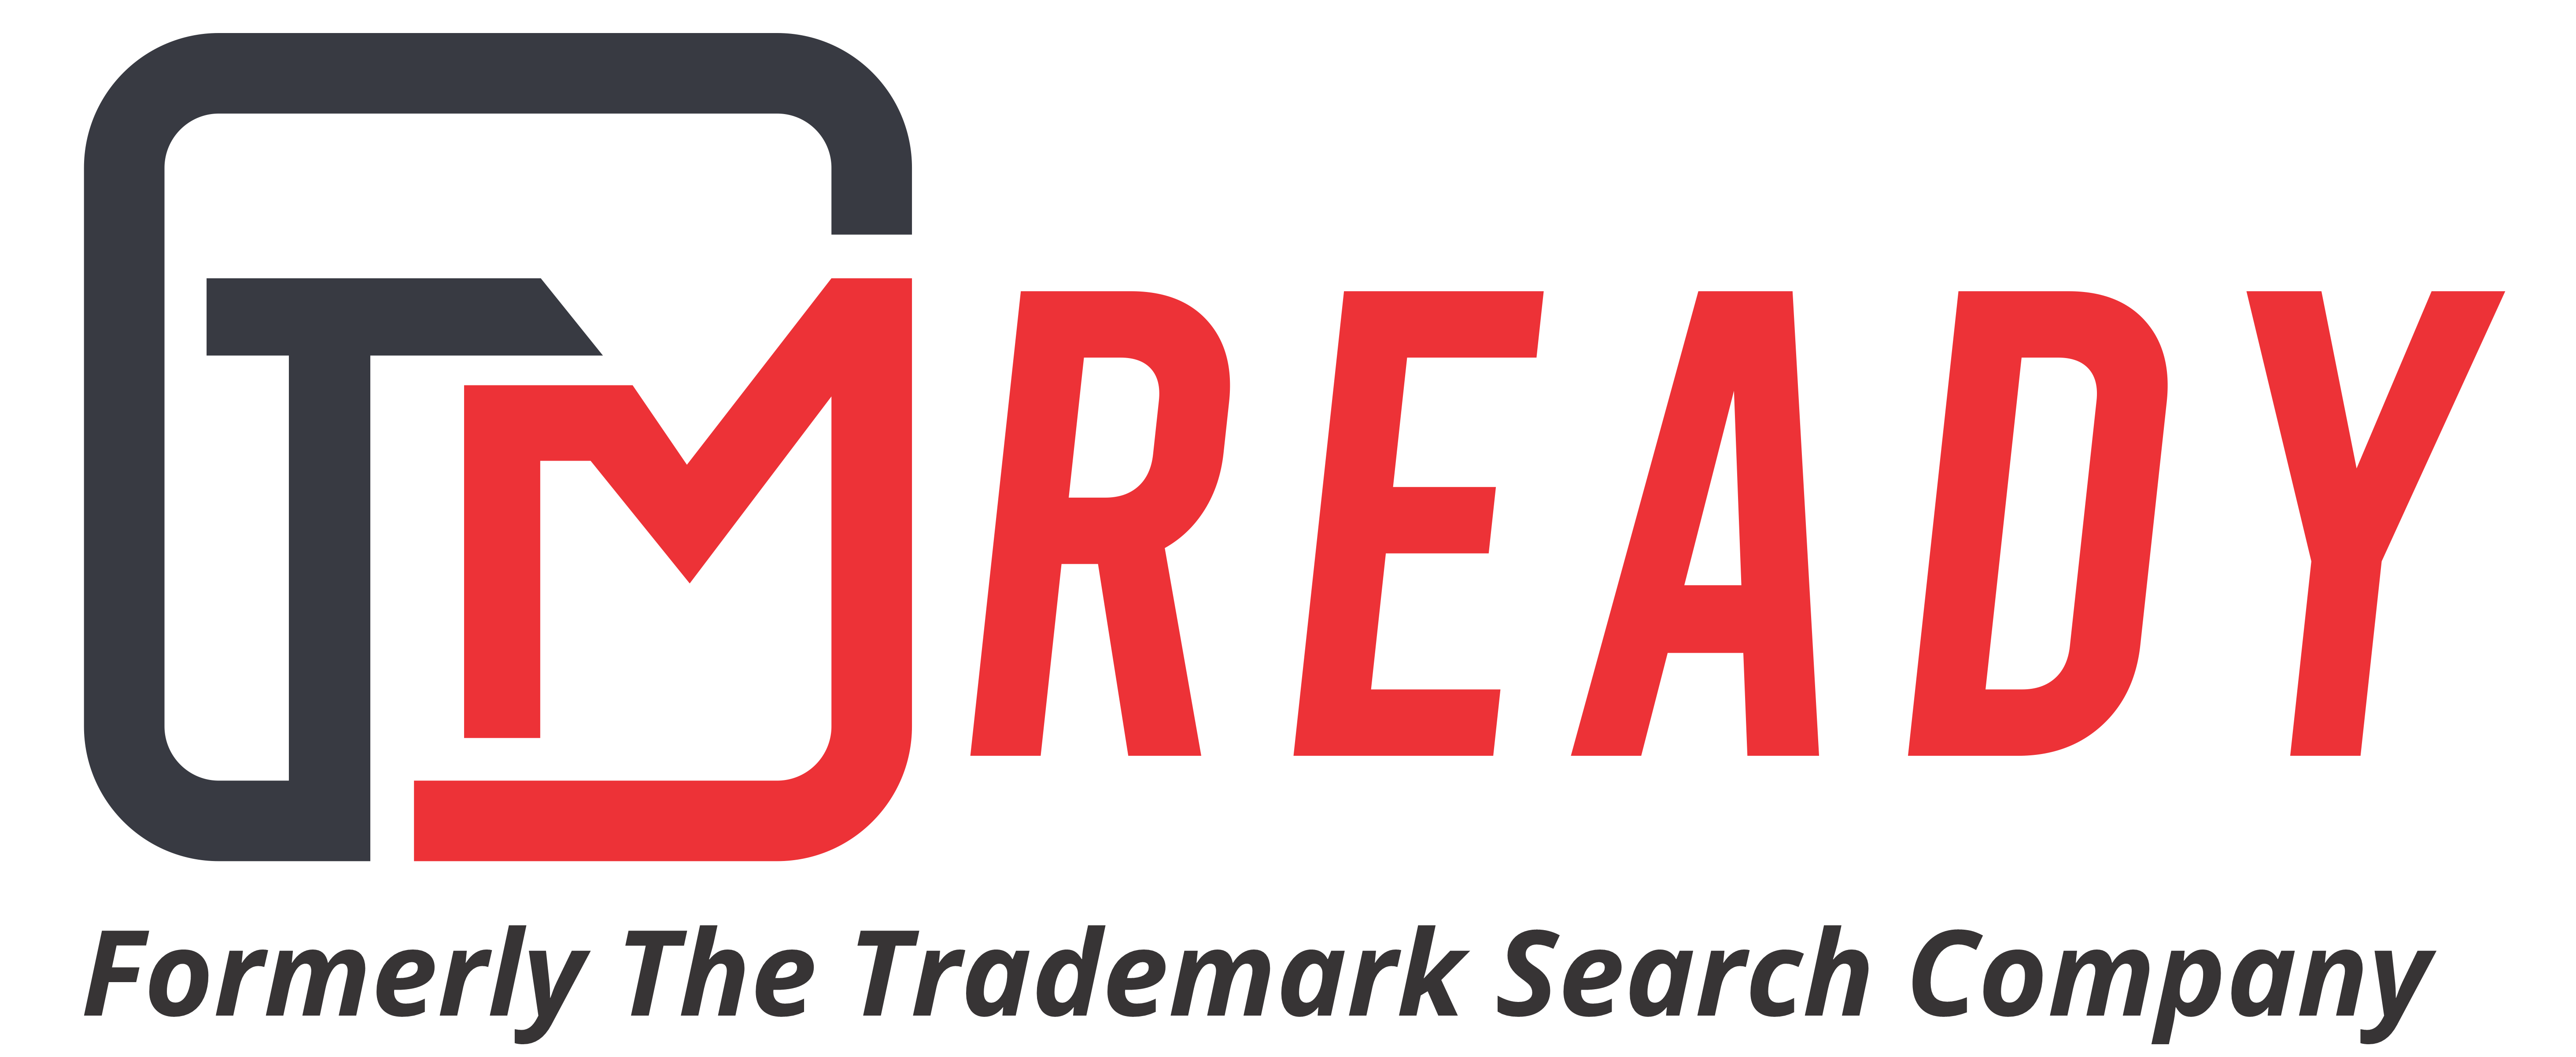 TMReady (Formerly The Trademark Search Company)